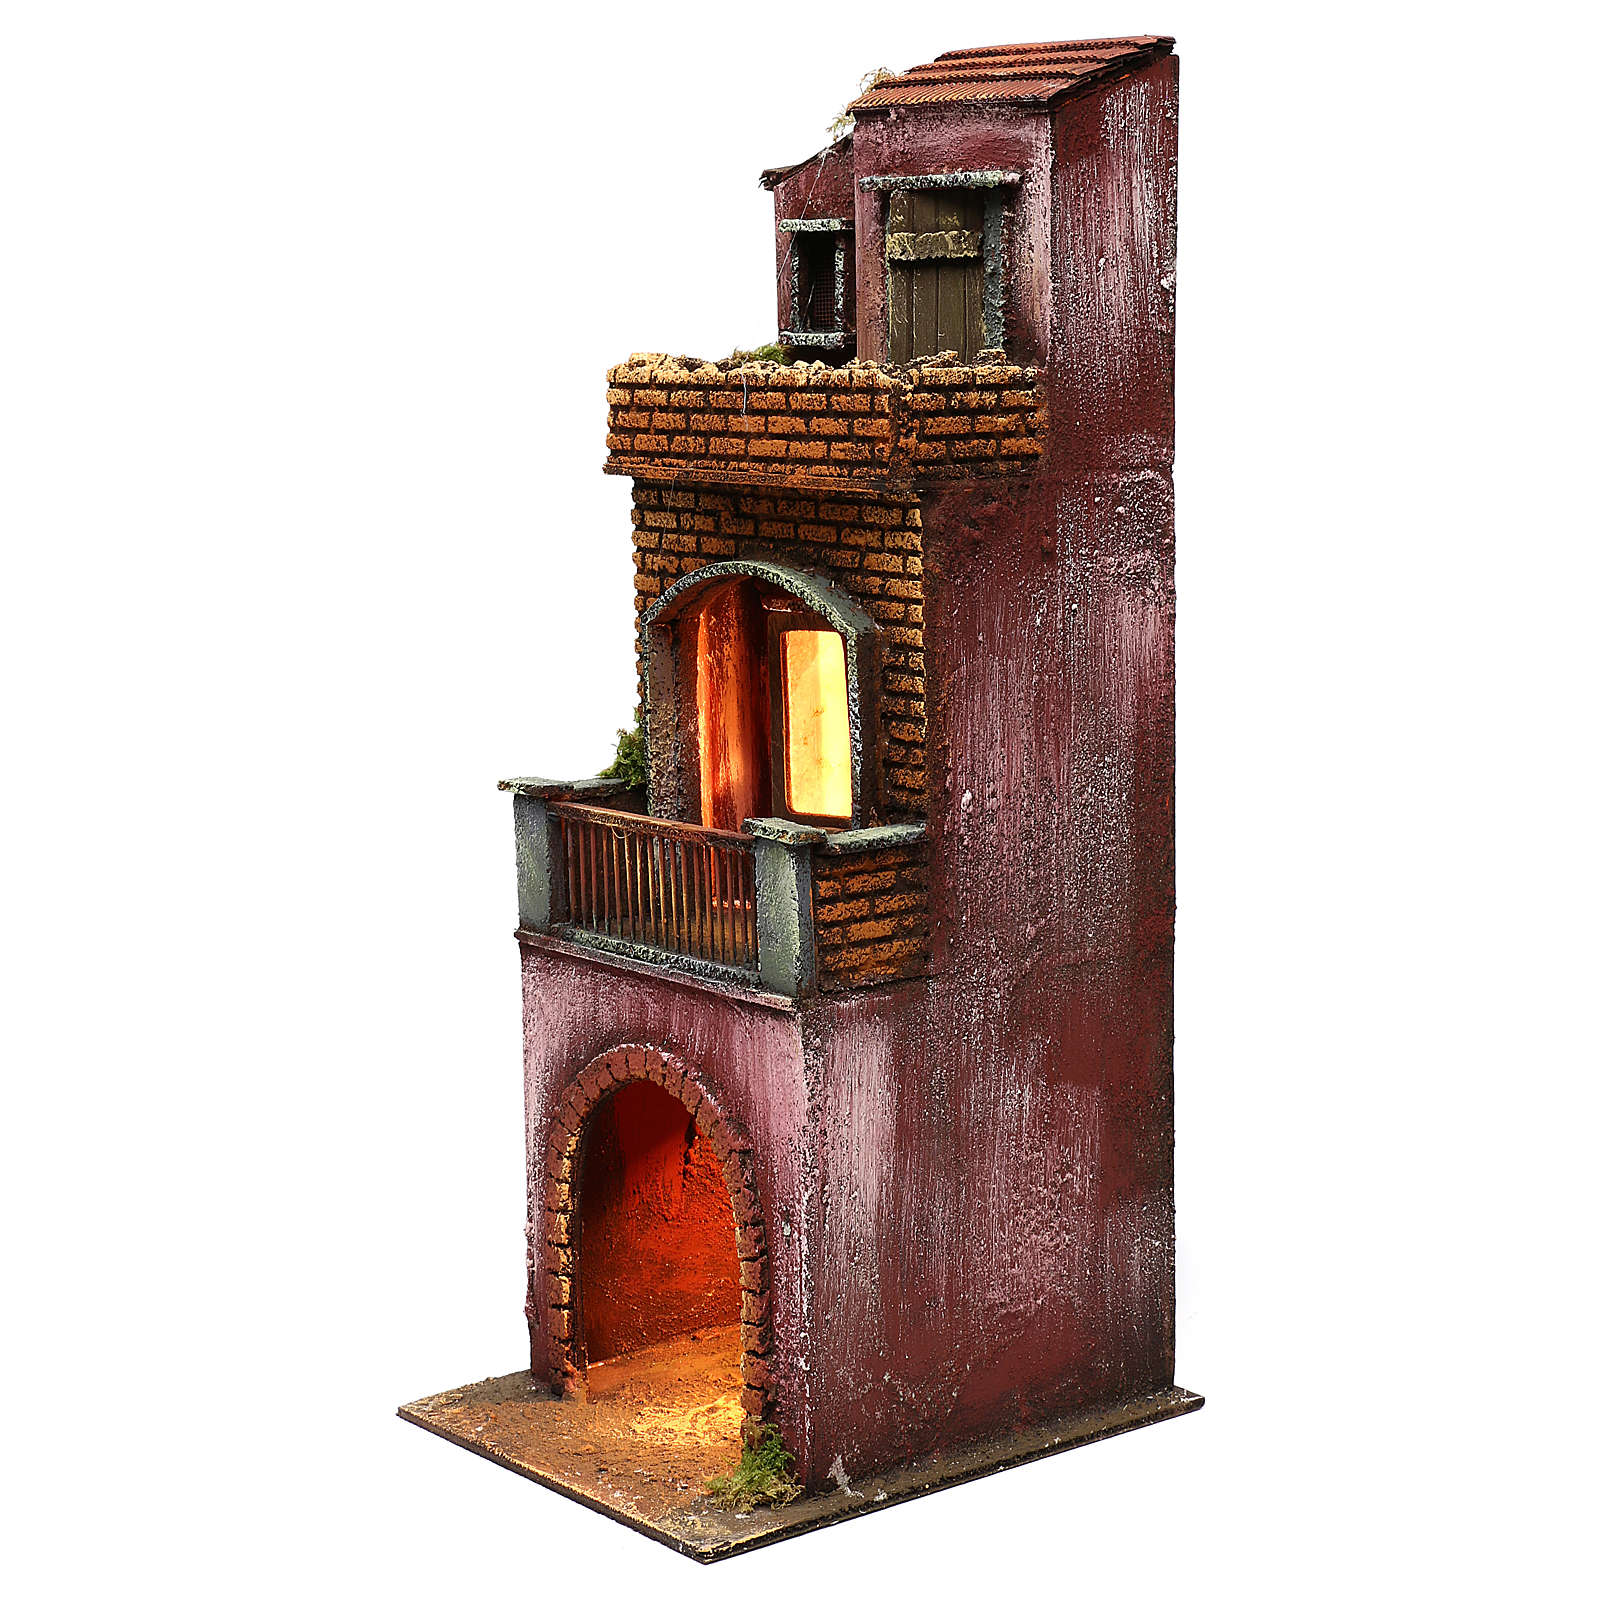 Neapolitan Nativity scene setting, three floors house with stable 45x20x20 cm 4